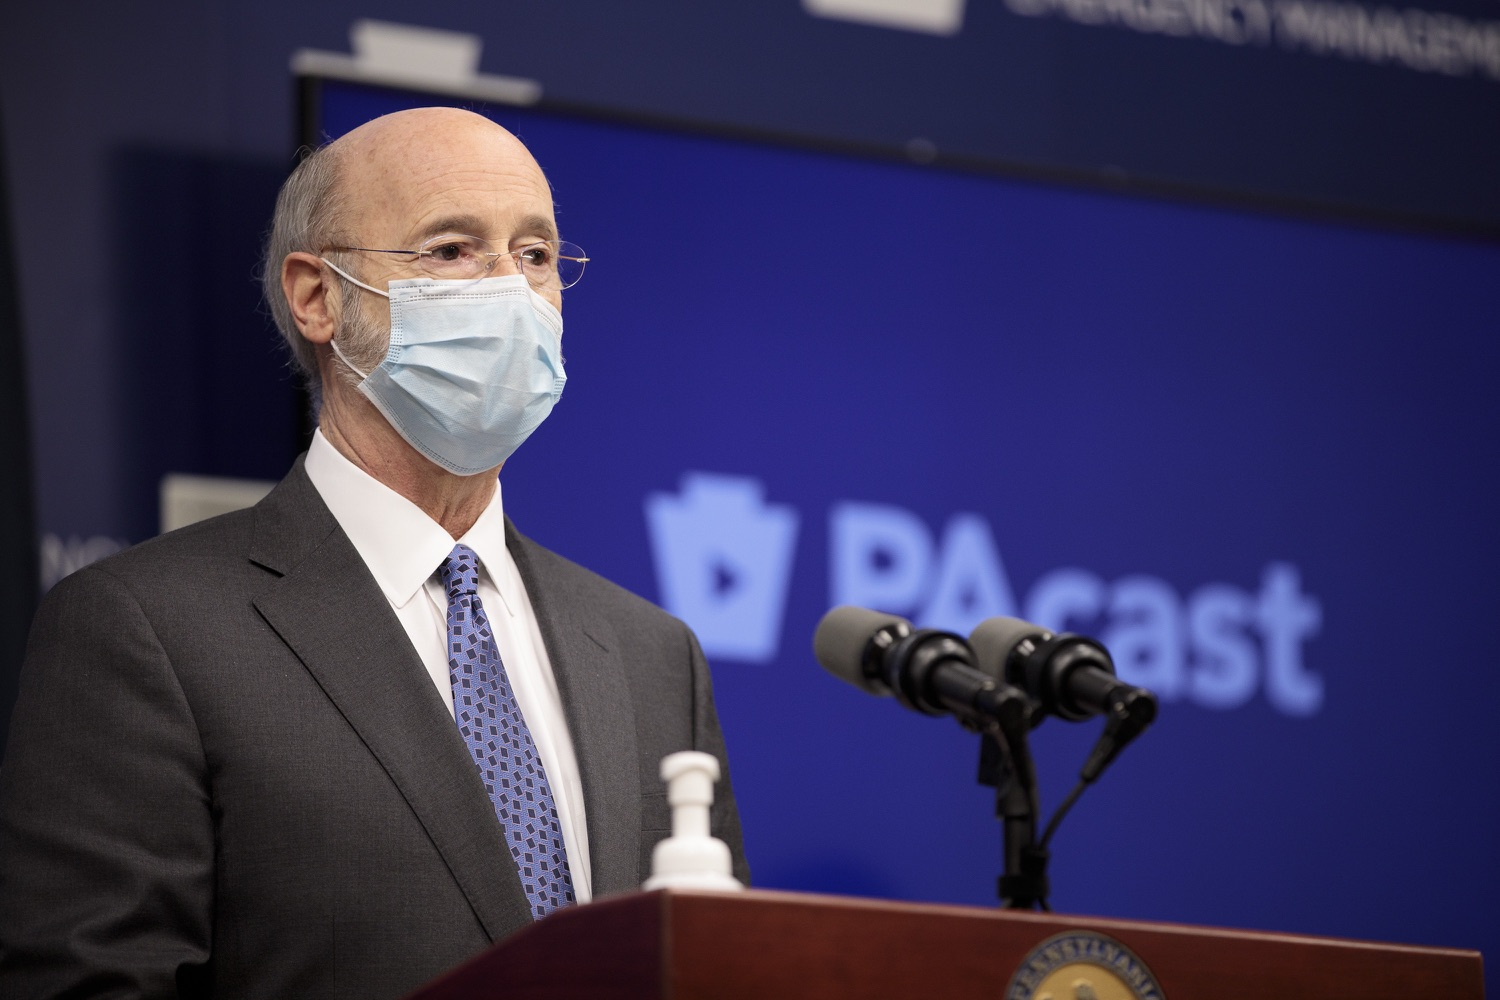 """<a href=""""https://filesource.wostreaming.net/commonwealthofpa/photo/18472_gov_vaccine_dz_12.jpg"""" target=""""_blank"""">⇣Download Photo<br></a>Pennsylvania Governor Tom Wolf speaks at the press conference.  The commonwealths COVID-19 vaccination distribution plan was designed to be fluid and flexible to meet guidance and recommendations from the federal government. Today, Governor Tom Wolf and Secretary of Health Dr. Rachel Levine announced the fourth version of the plan, detailing the updates and how the state is working to ensure safe, swift implementation. Harrisburg, PA  January 8, 2021"""